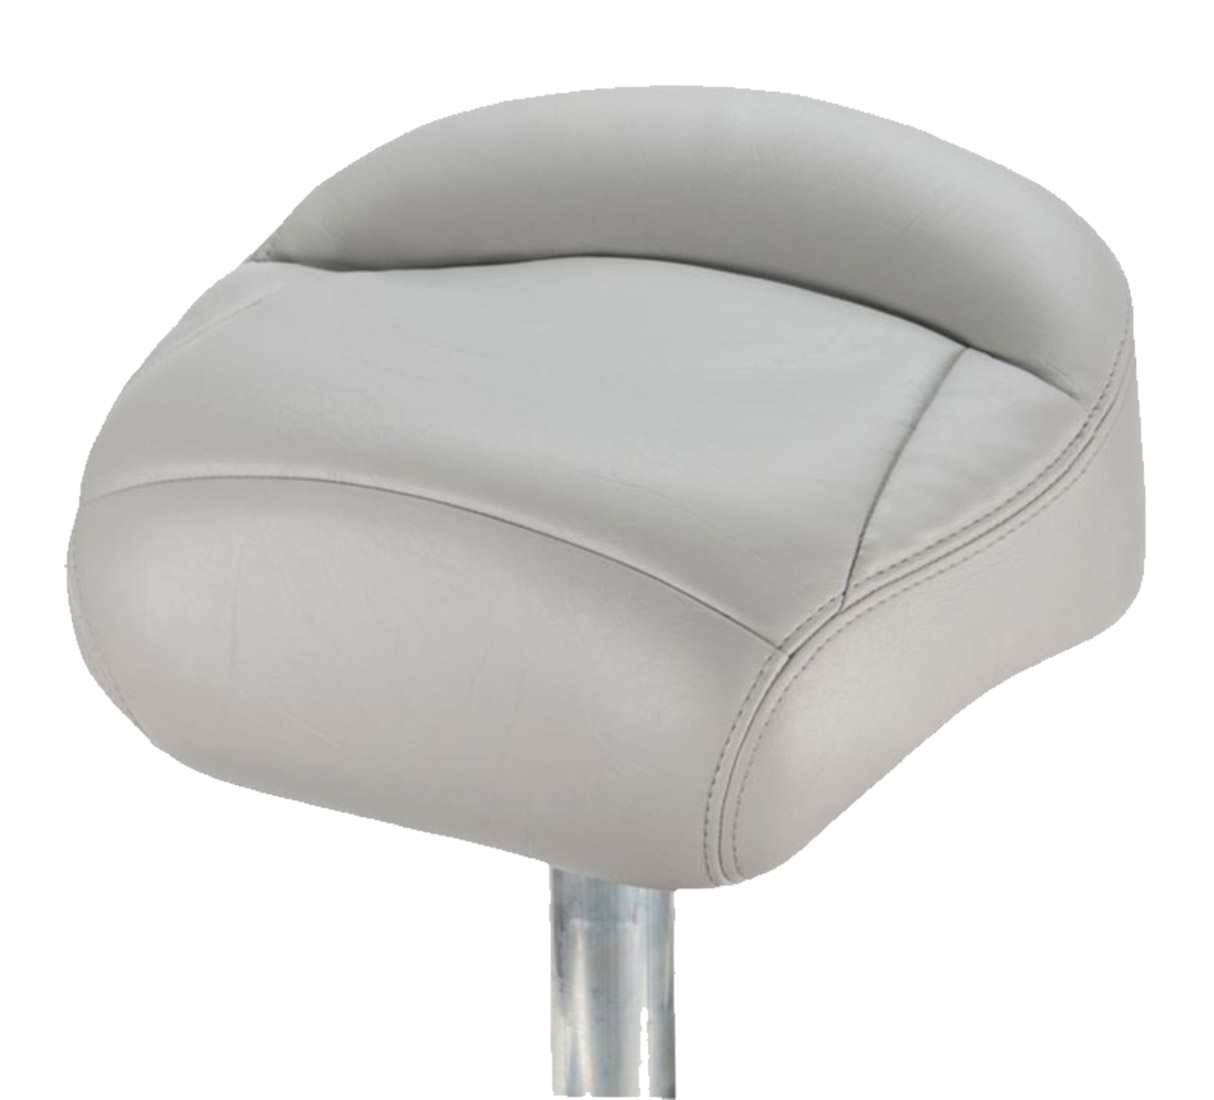 TEMPRESS GUIDE SERIES CASTING SEAT W/MOLDED FOAM - GRAY_1.jpg